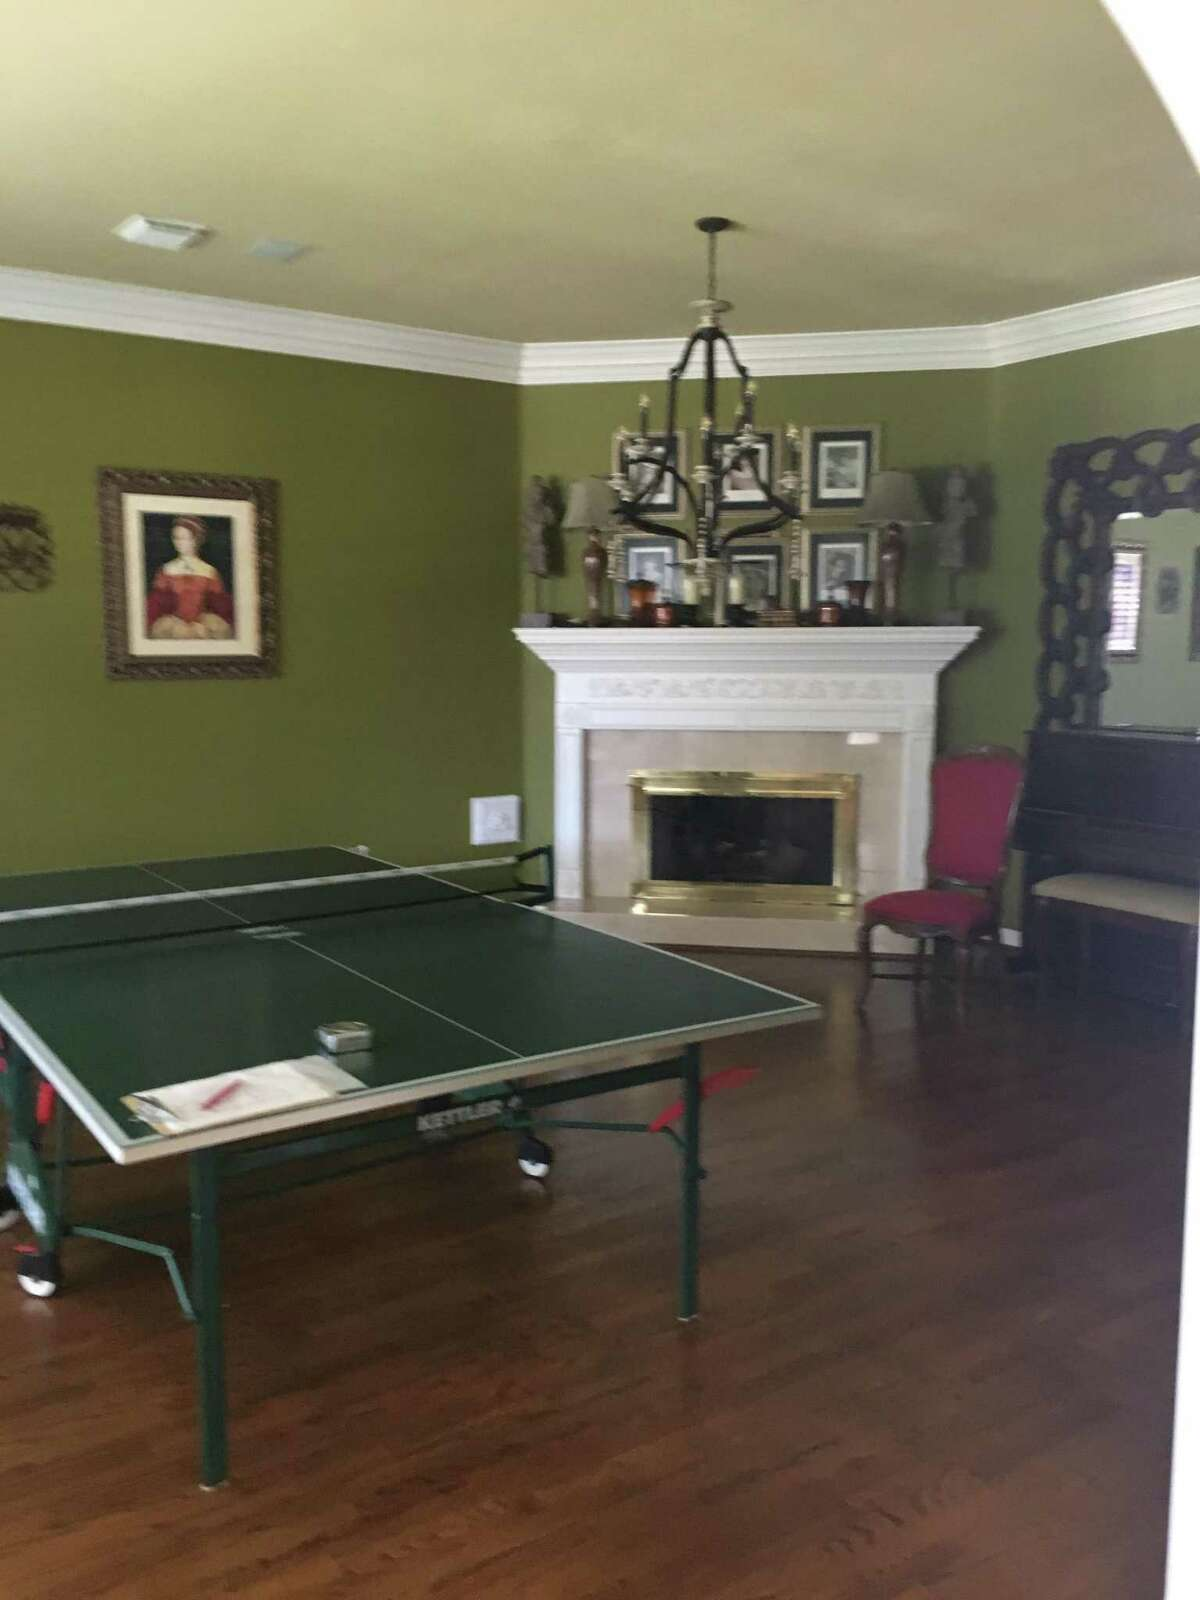 Before: The game room was painted olive green and had little more than a ping pong table.